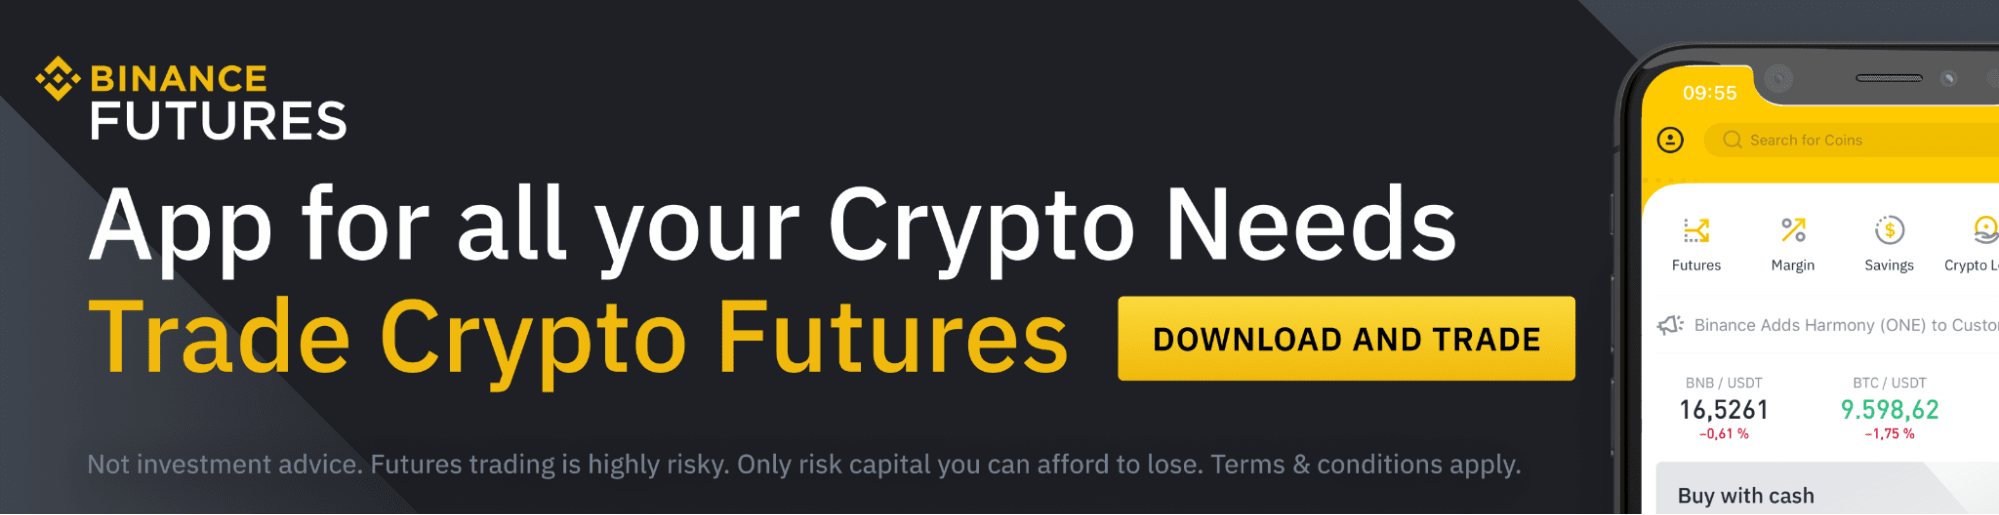 Futures Trading Report (June 2021): Will Bitcoin Break Out of Range Soon?Cryptocurrency Trading Signals, Strategies & Templates   DexStrats